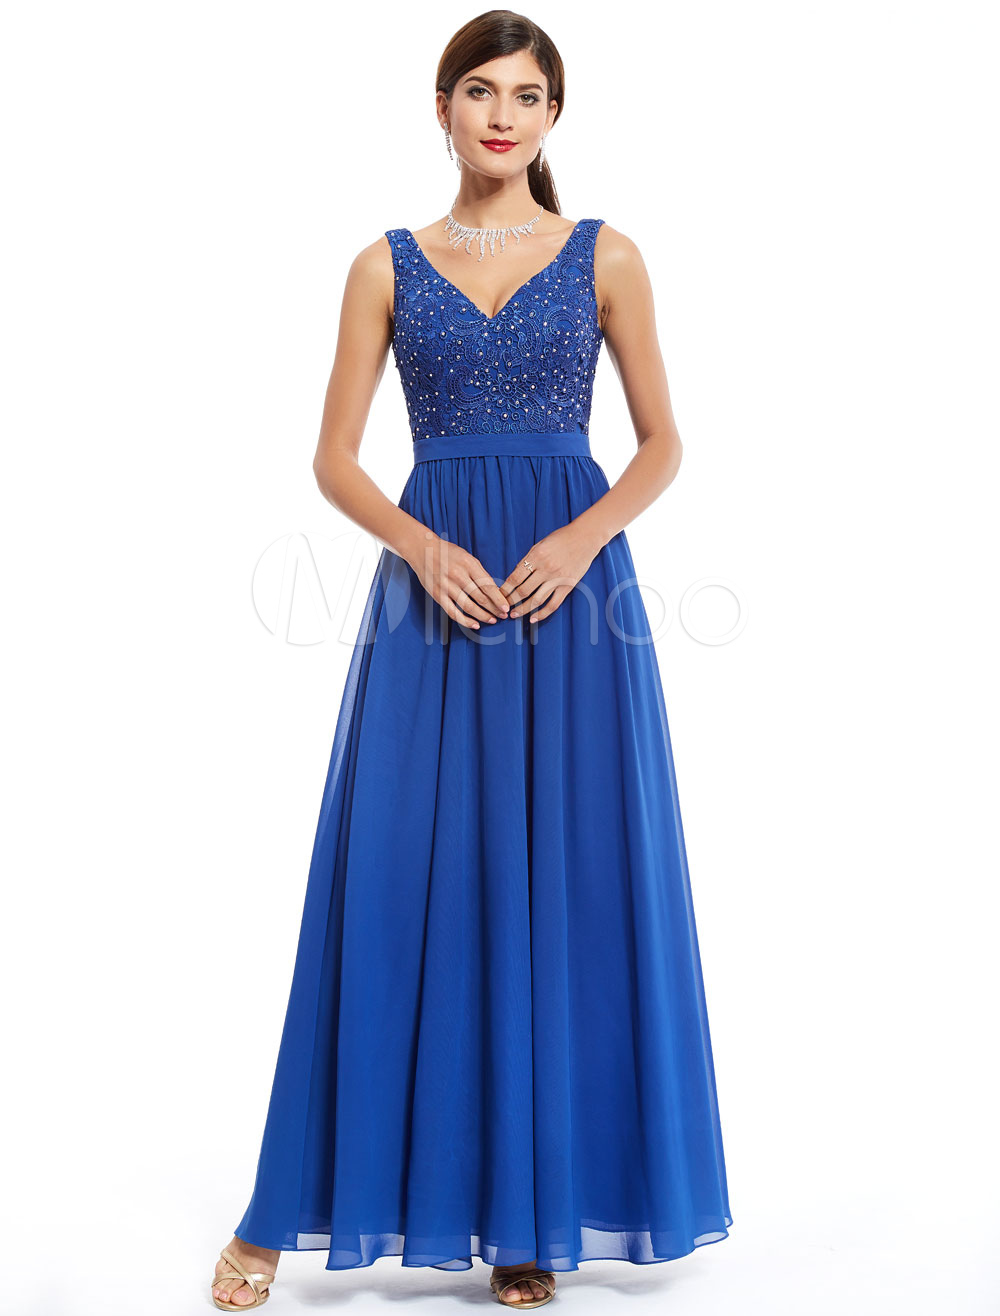 Buy Mother Dresses Royal Blue Wedding Guest Dress Lace Chiffon Beading V Neck Long Occasion Dress for $115.69 in Milanoo store